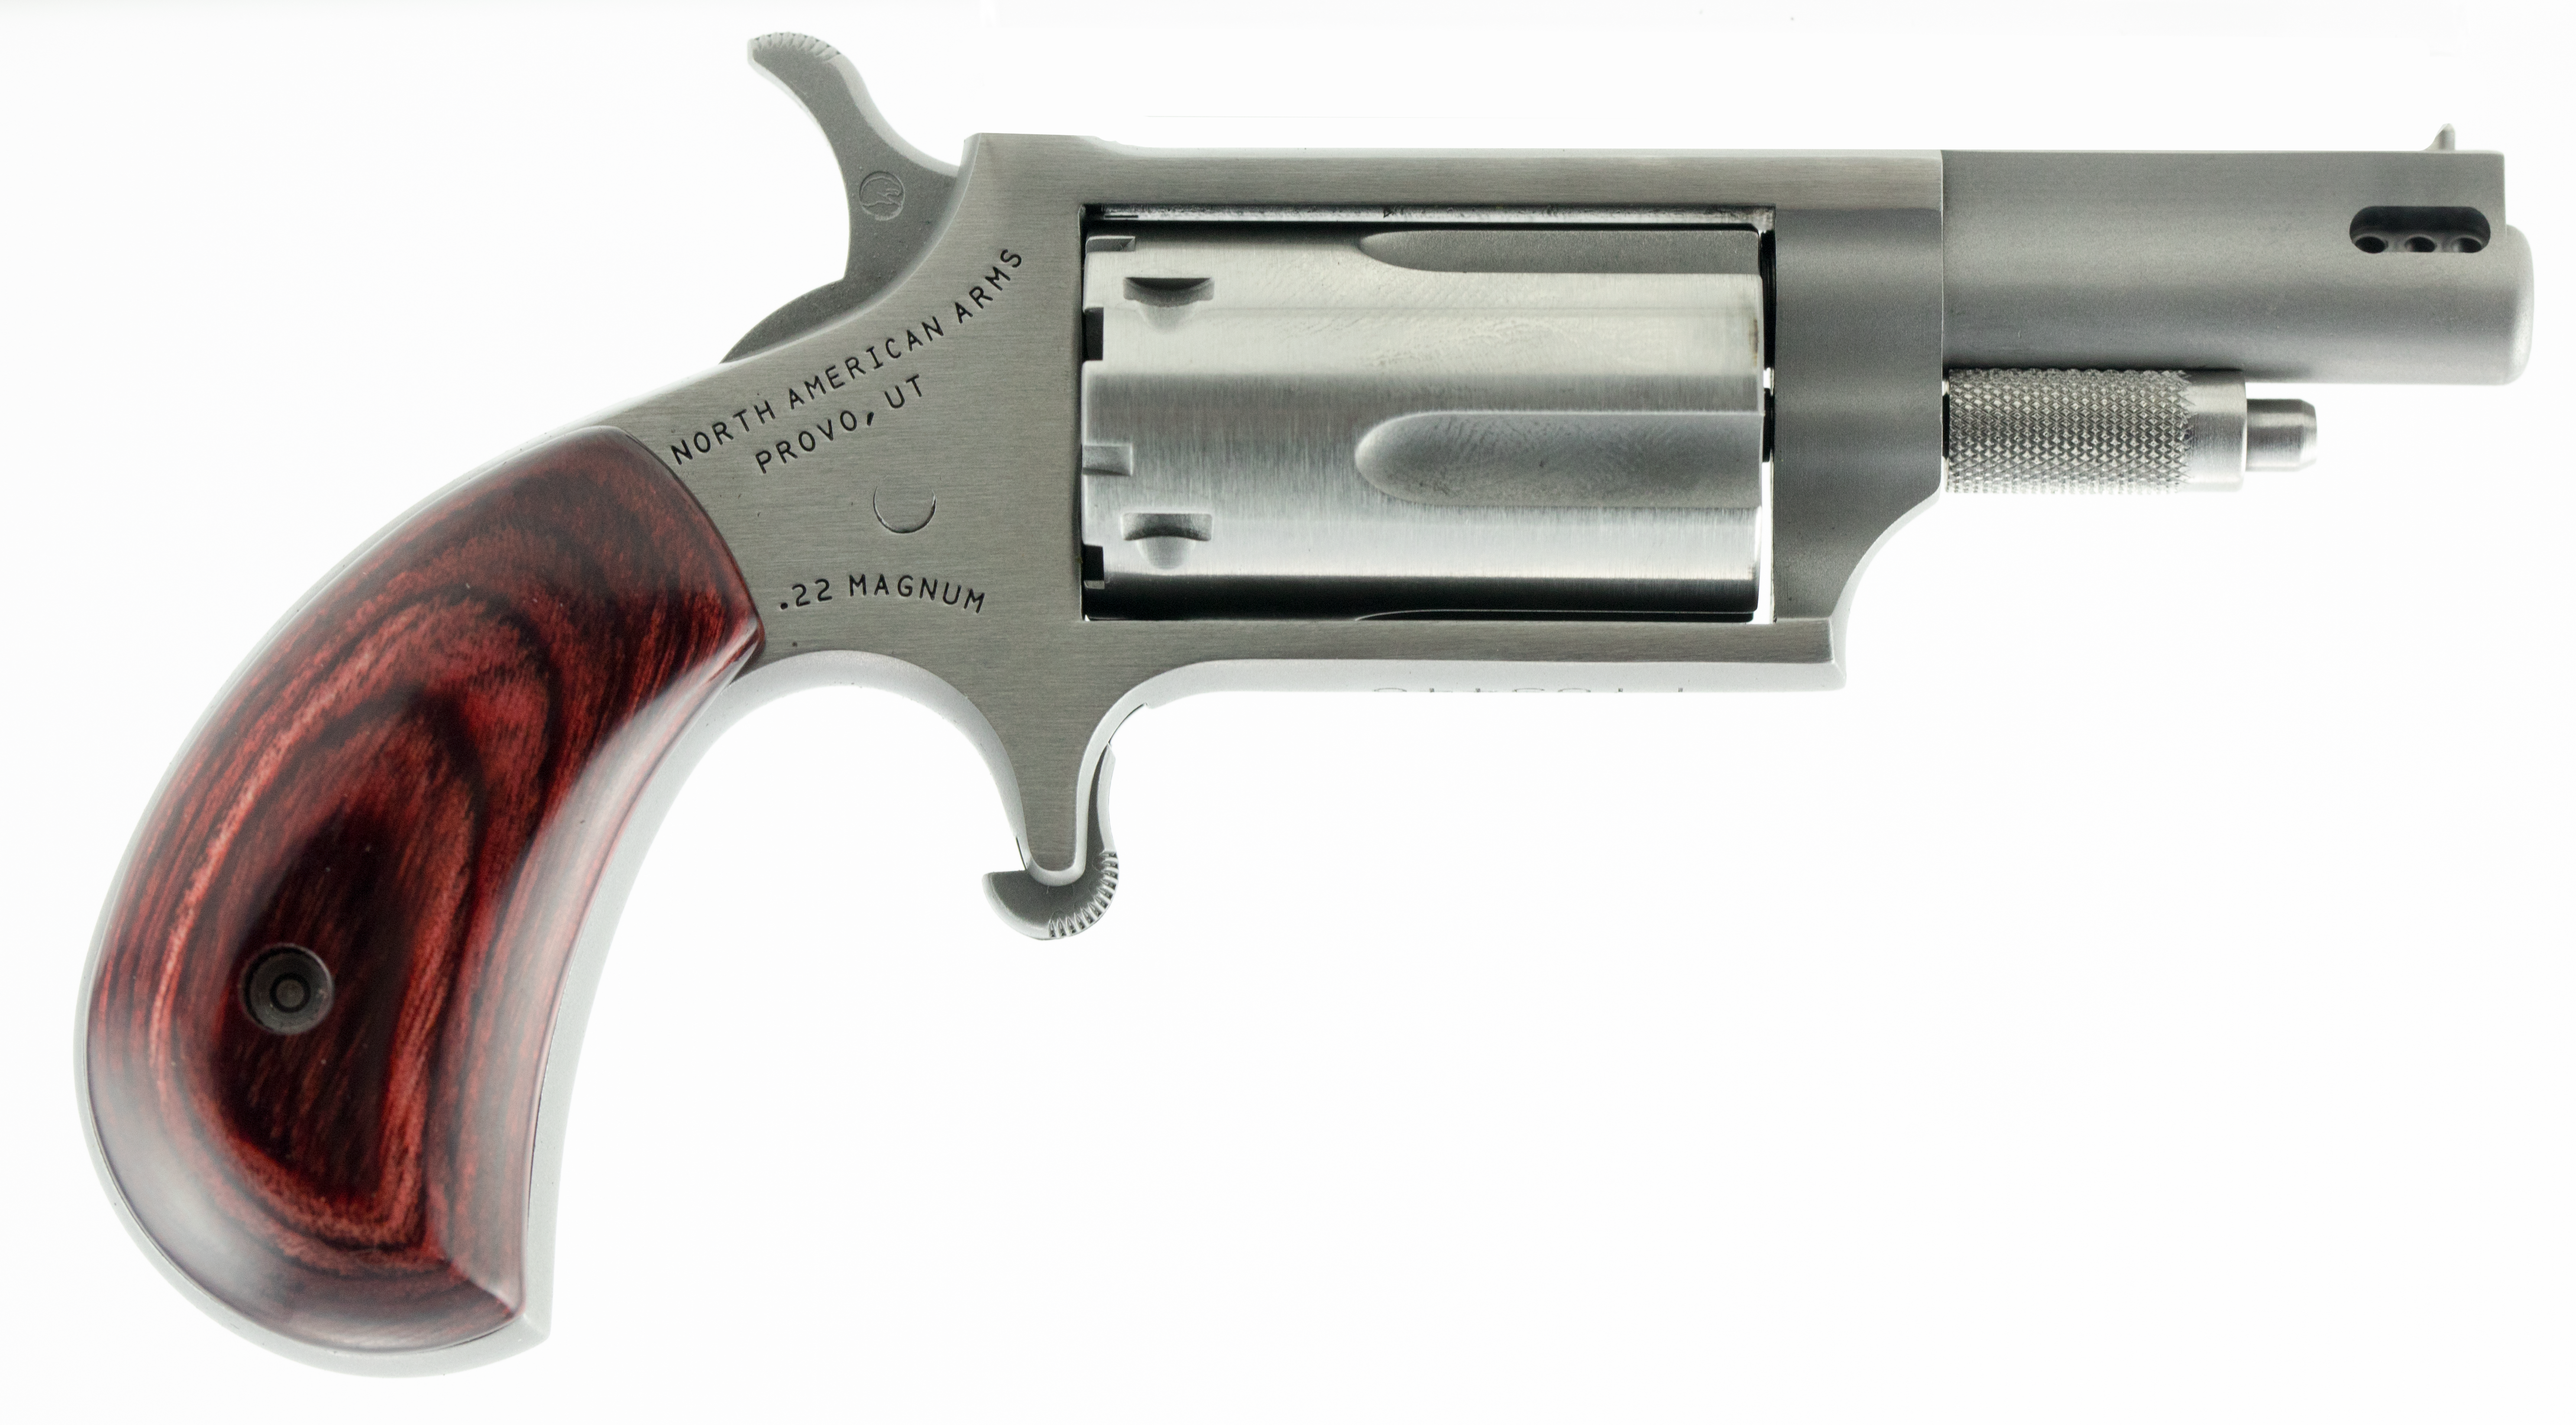 NAA Mini Revolver - .22 LR/.22 Magnum 5rd - Ported - Wood/Stainless